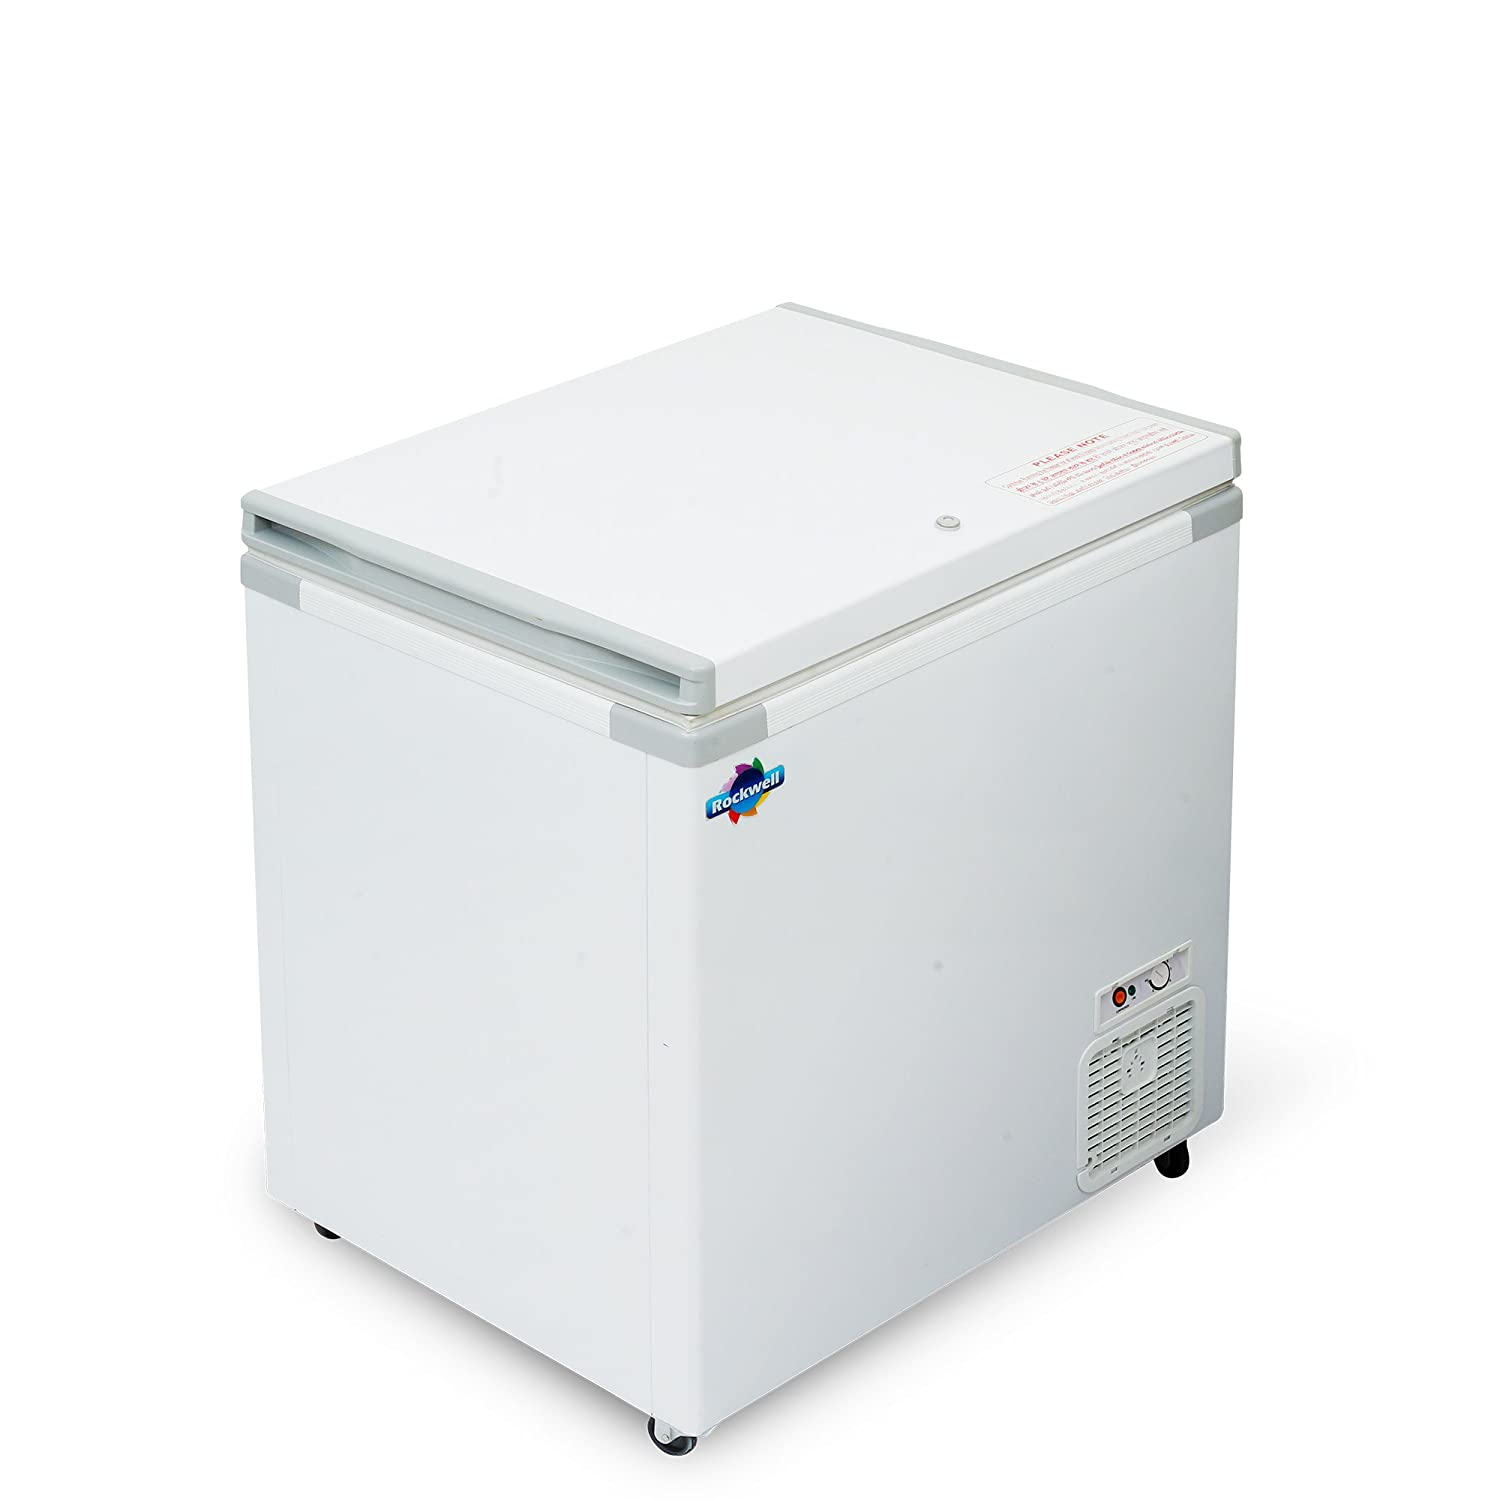 Image result for rockwell deepfreezer images hd